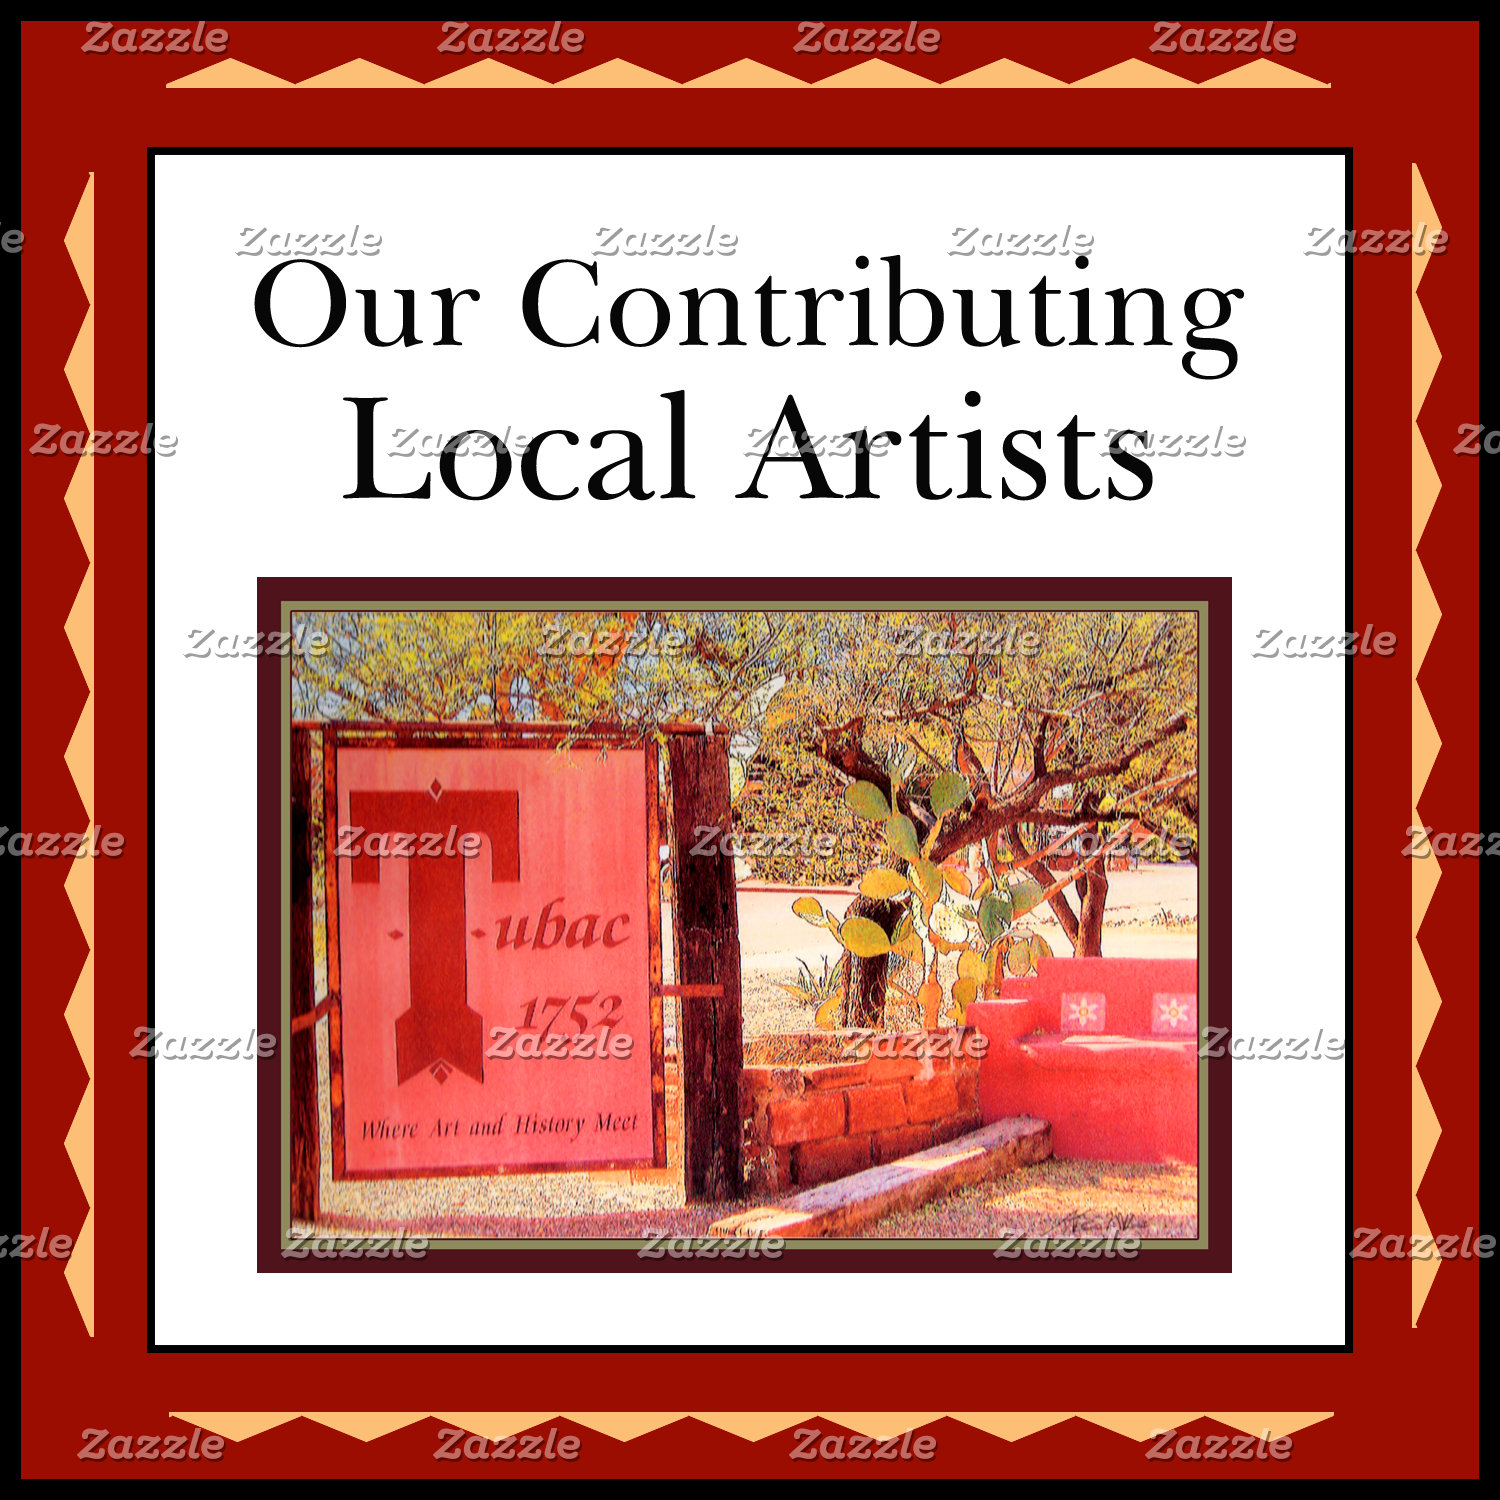 Artists, Contributed local artwork